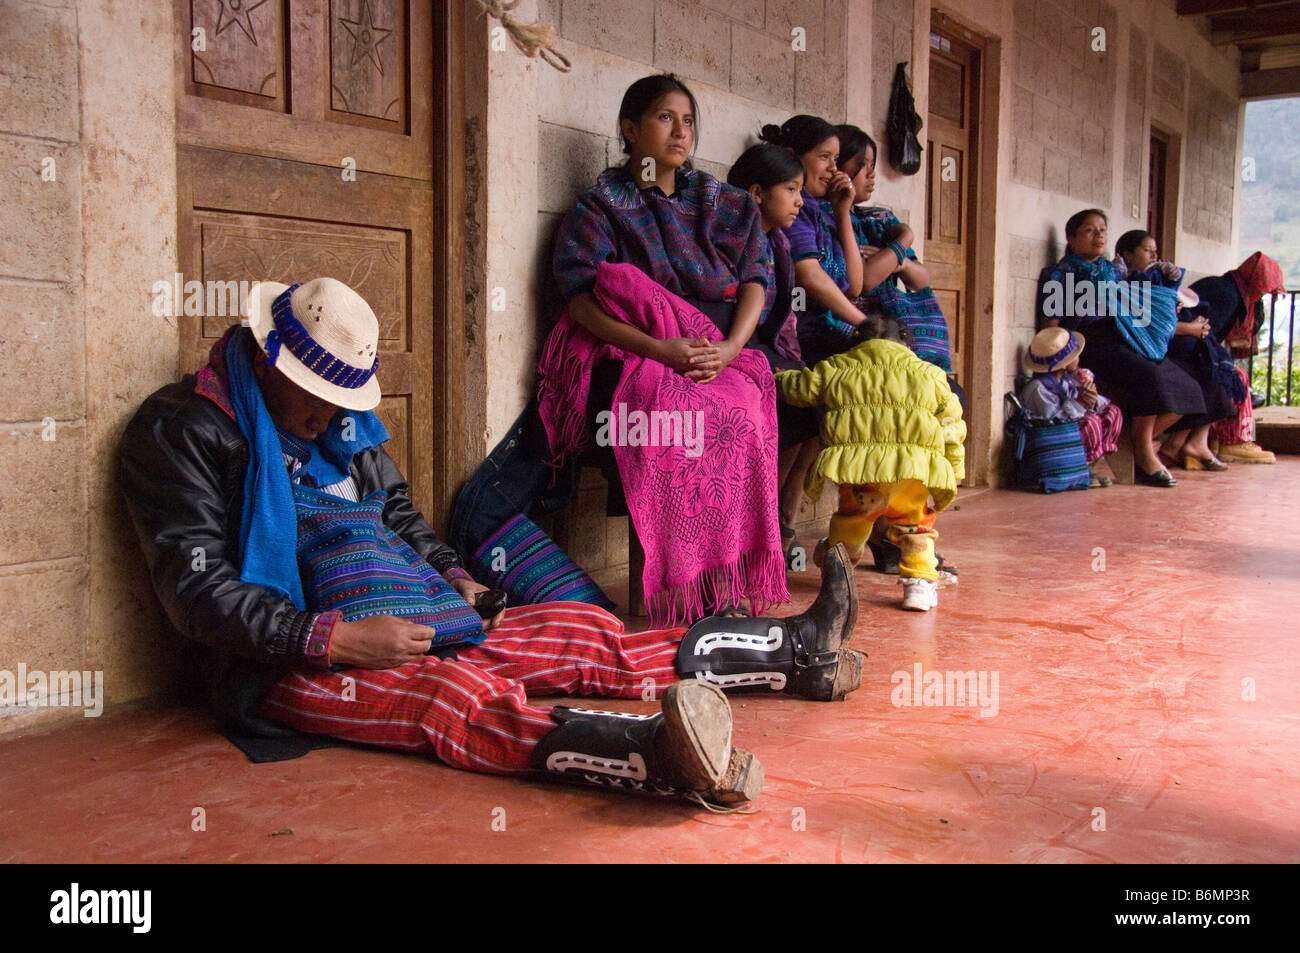 Boozer leans against a wall in front of his female family members.Annual festival(Oct 31-Nov 2)Todos Santos Cuchumatan,Guatemala - Stock Image